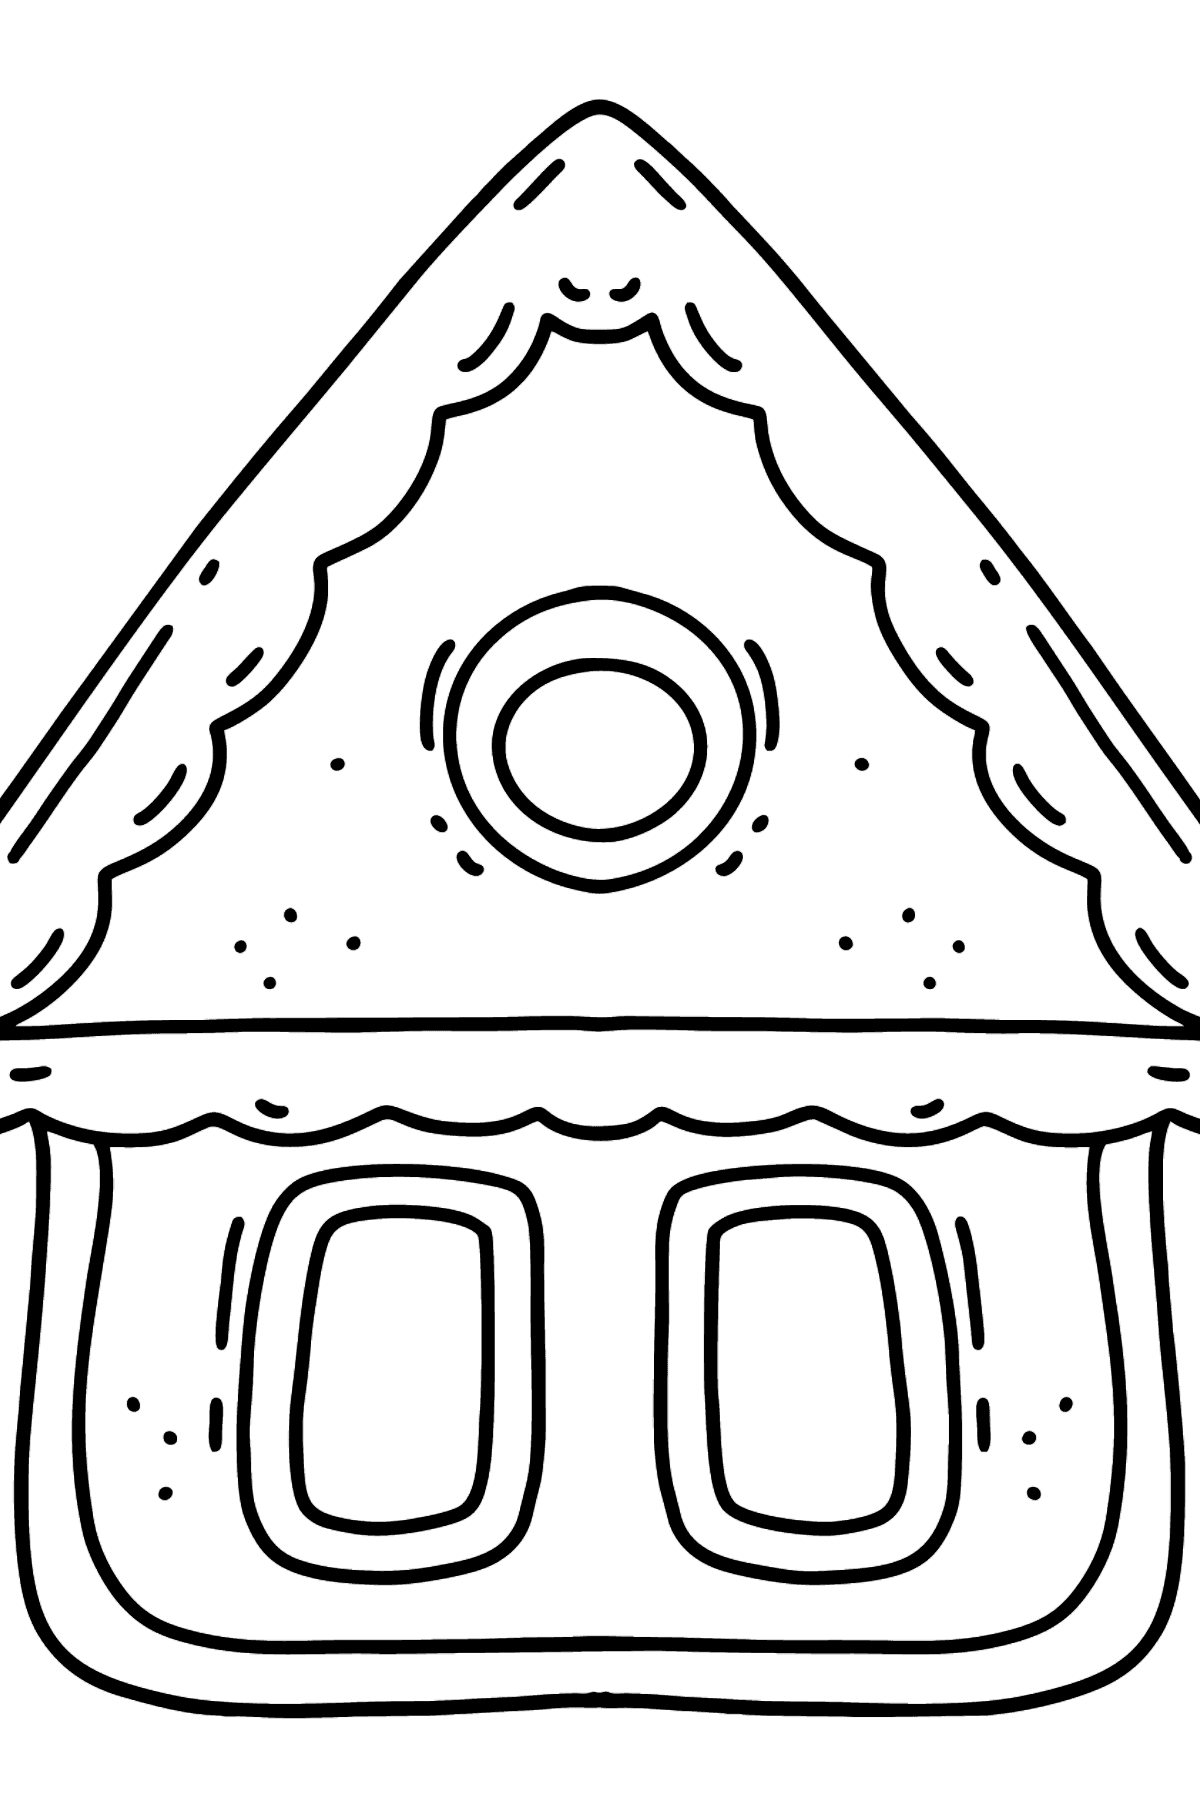 Little Gingerbread House coloring page - Coloring Pages for Kids